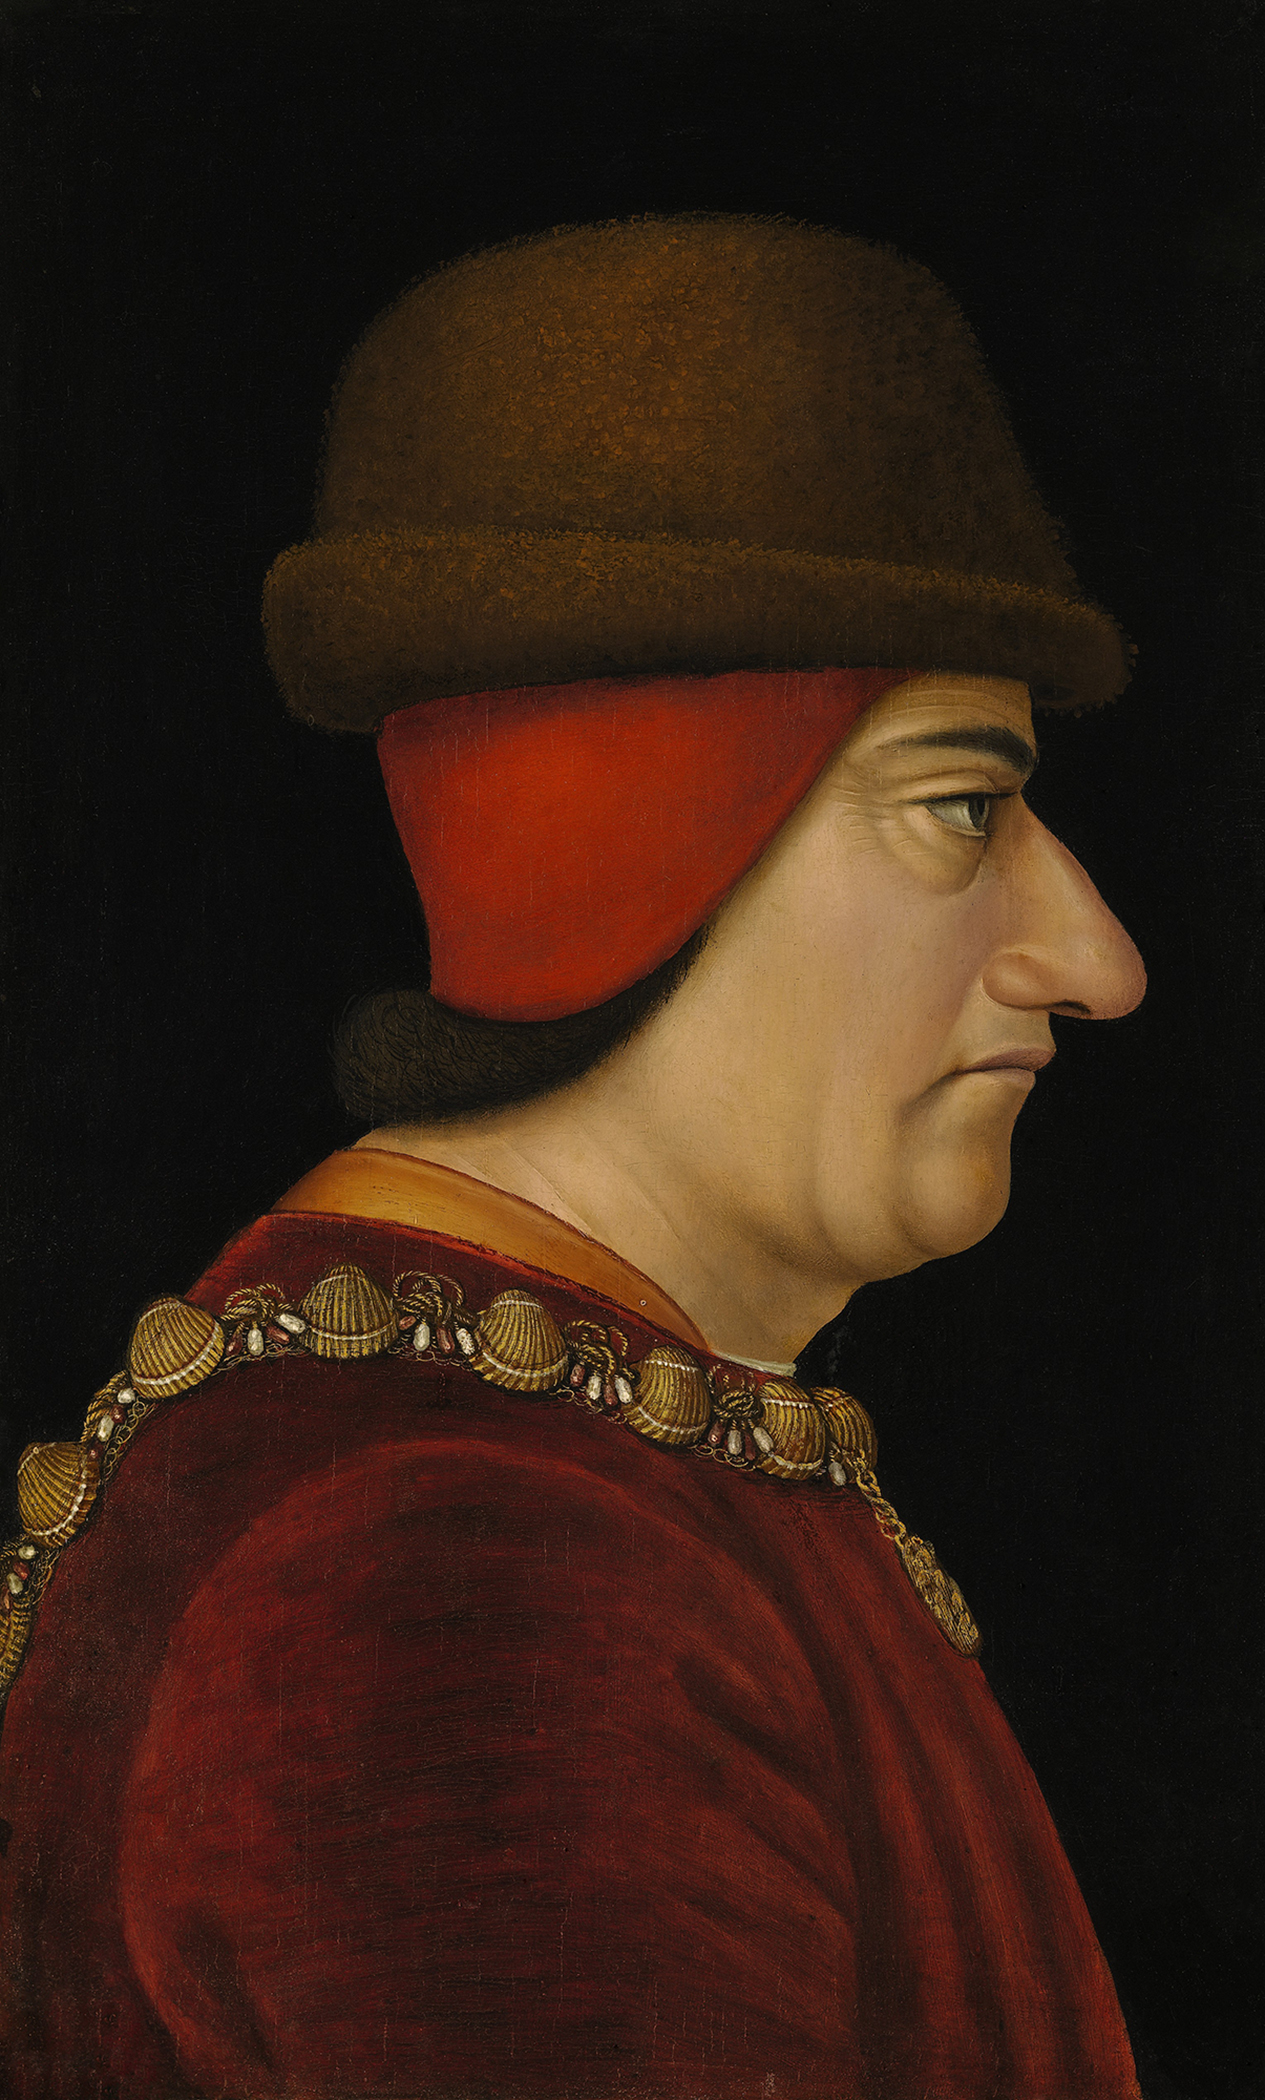 Portrait of Louis XI (1423-1483), King of France (1461-1483), 1470 | Portraits of Kings